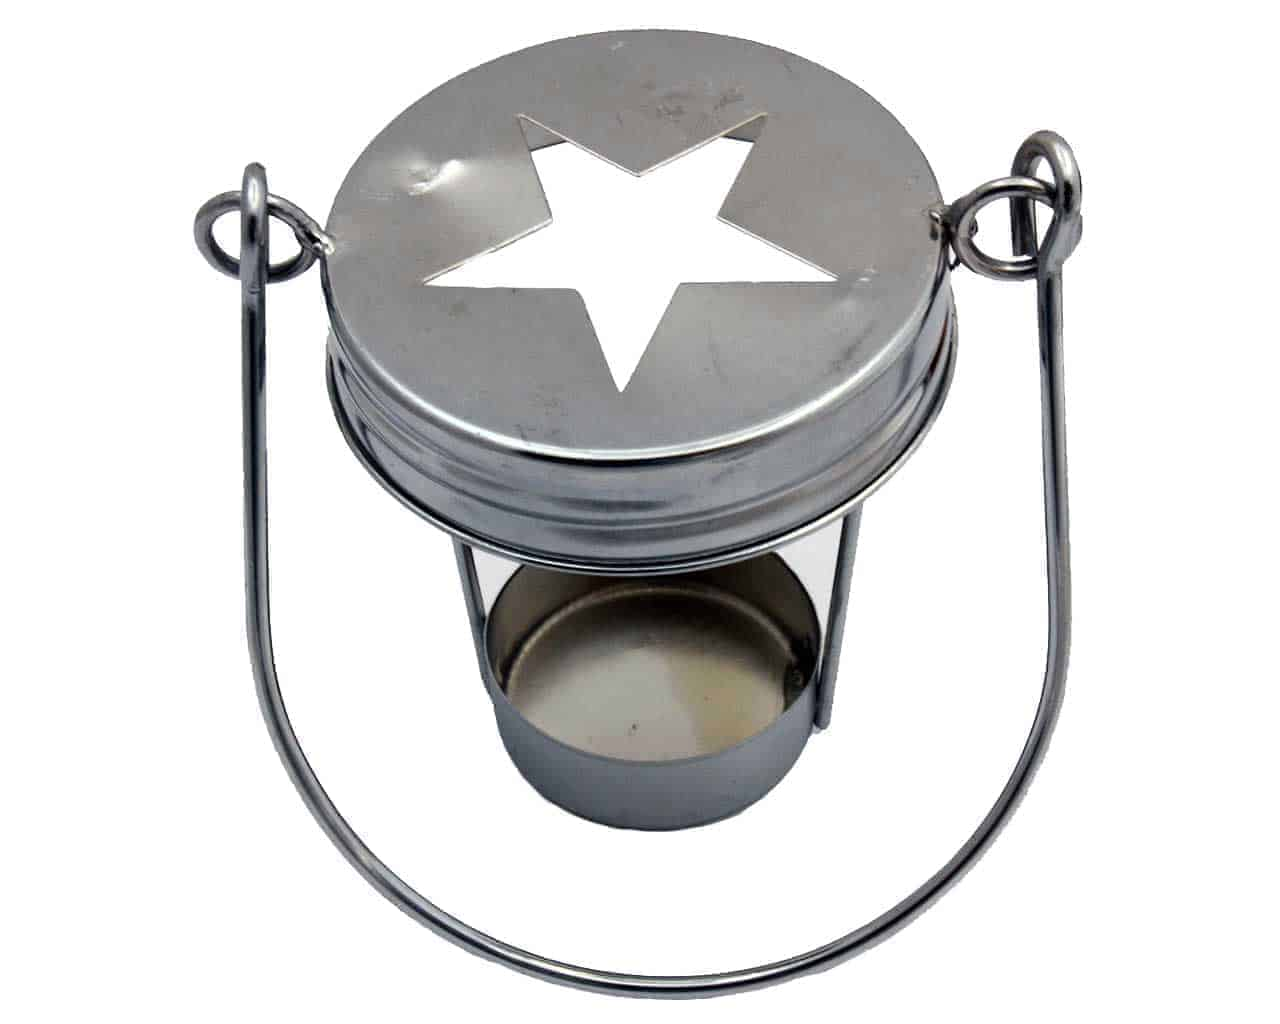 Silver Star Cutout Tea Light Candle Holder With Handle For